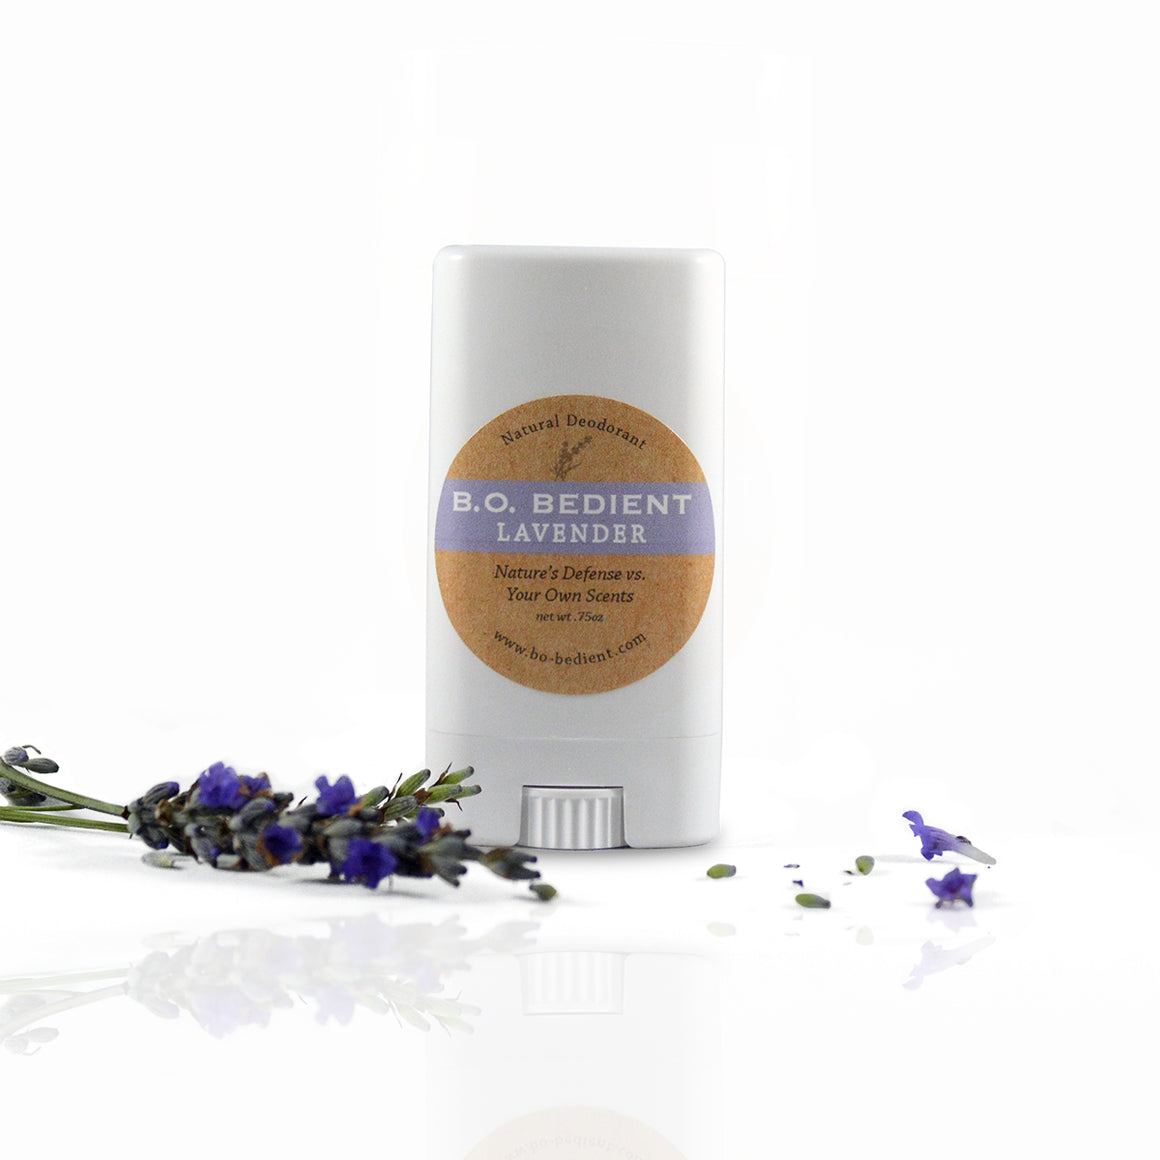 All Natural Deodorant - Lavender Travel Stick